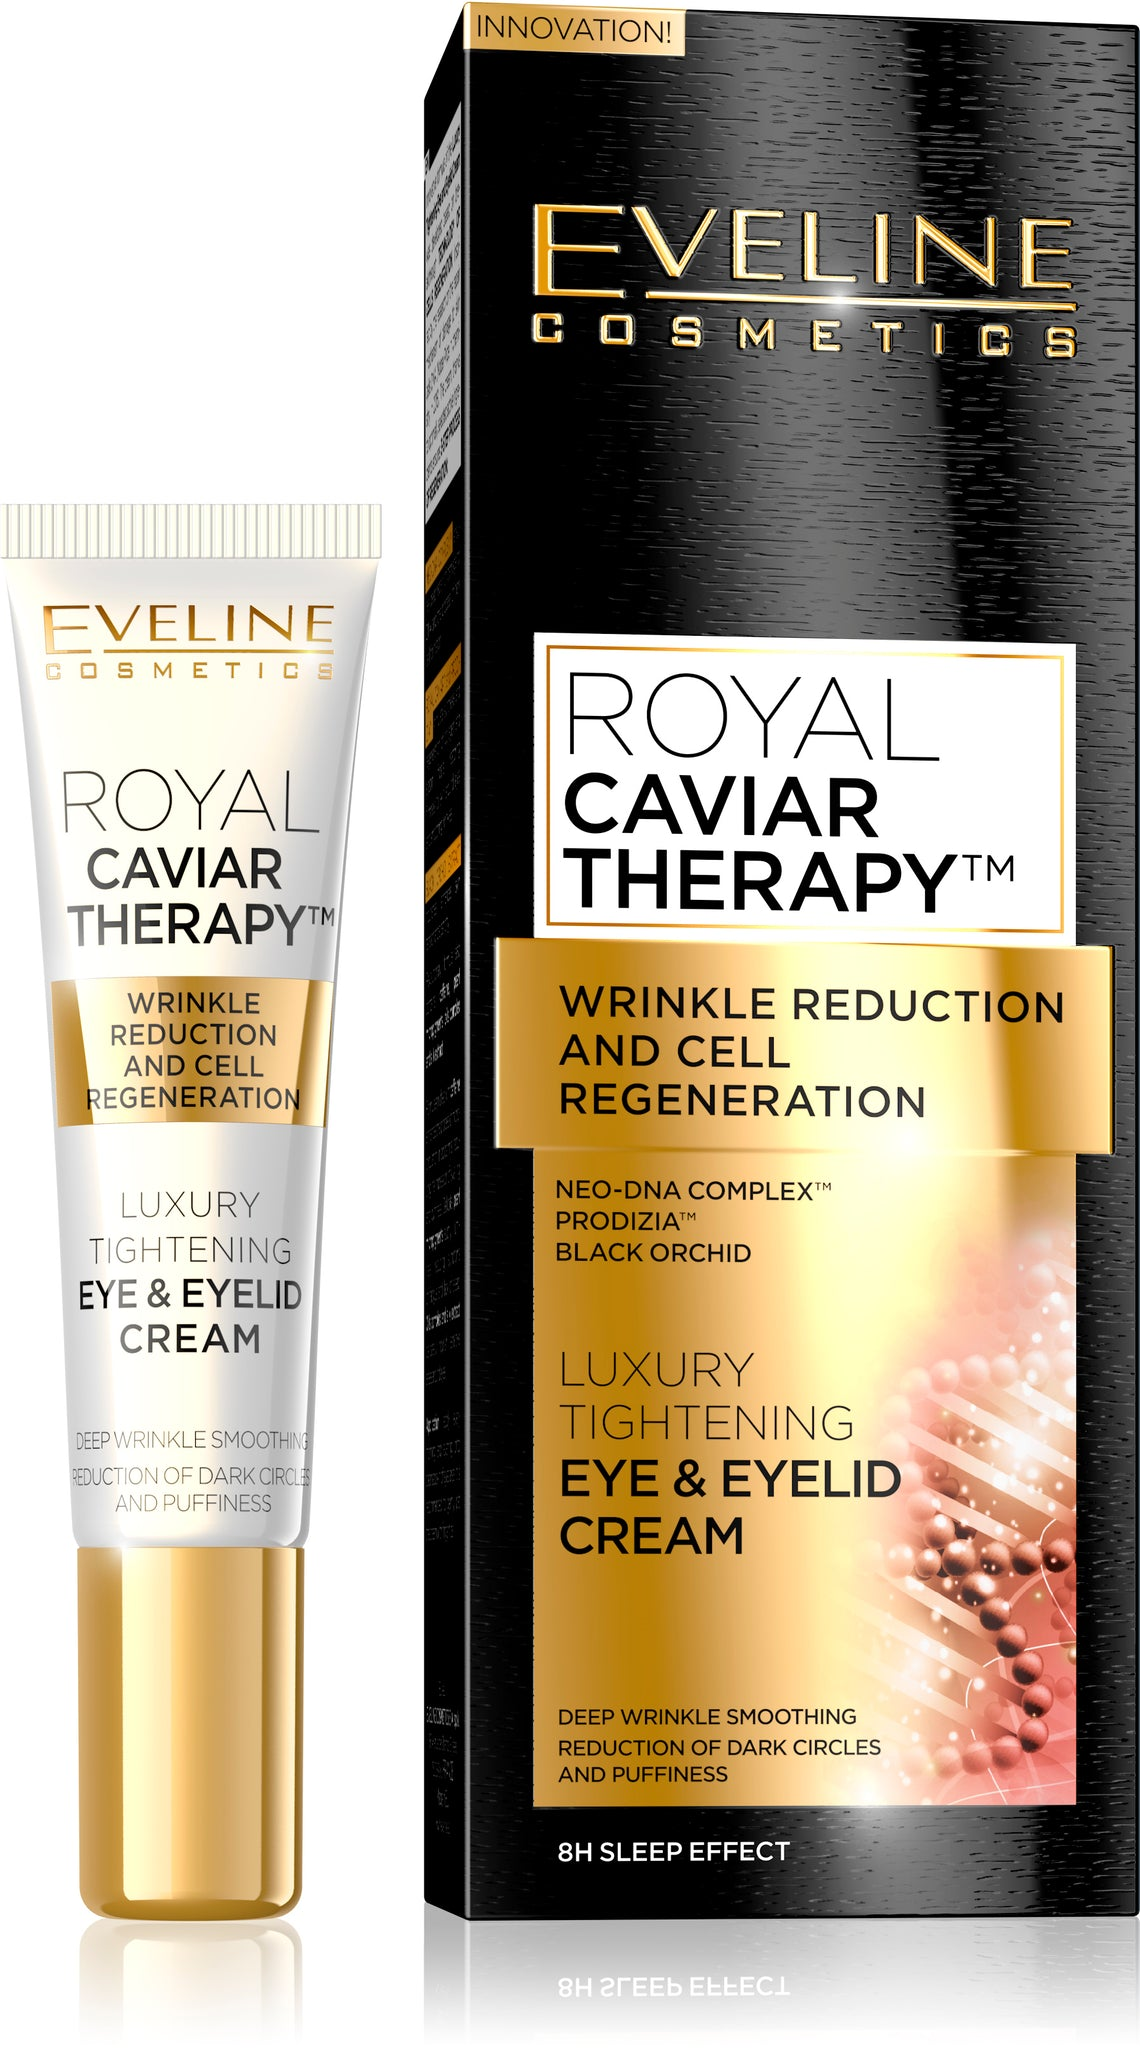 Eveline Royal Caviar Anti Wrinkle Firming Eye Cream SPF10 15ml - eveline-cosmetics